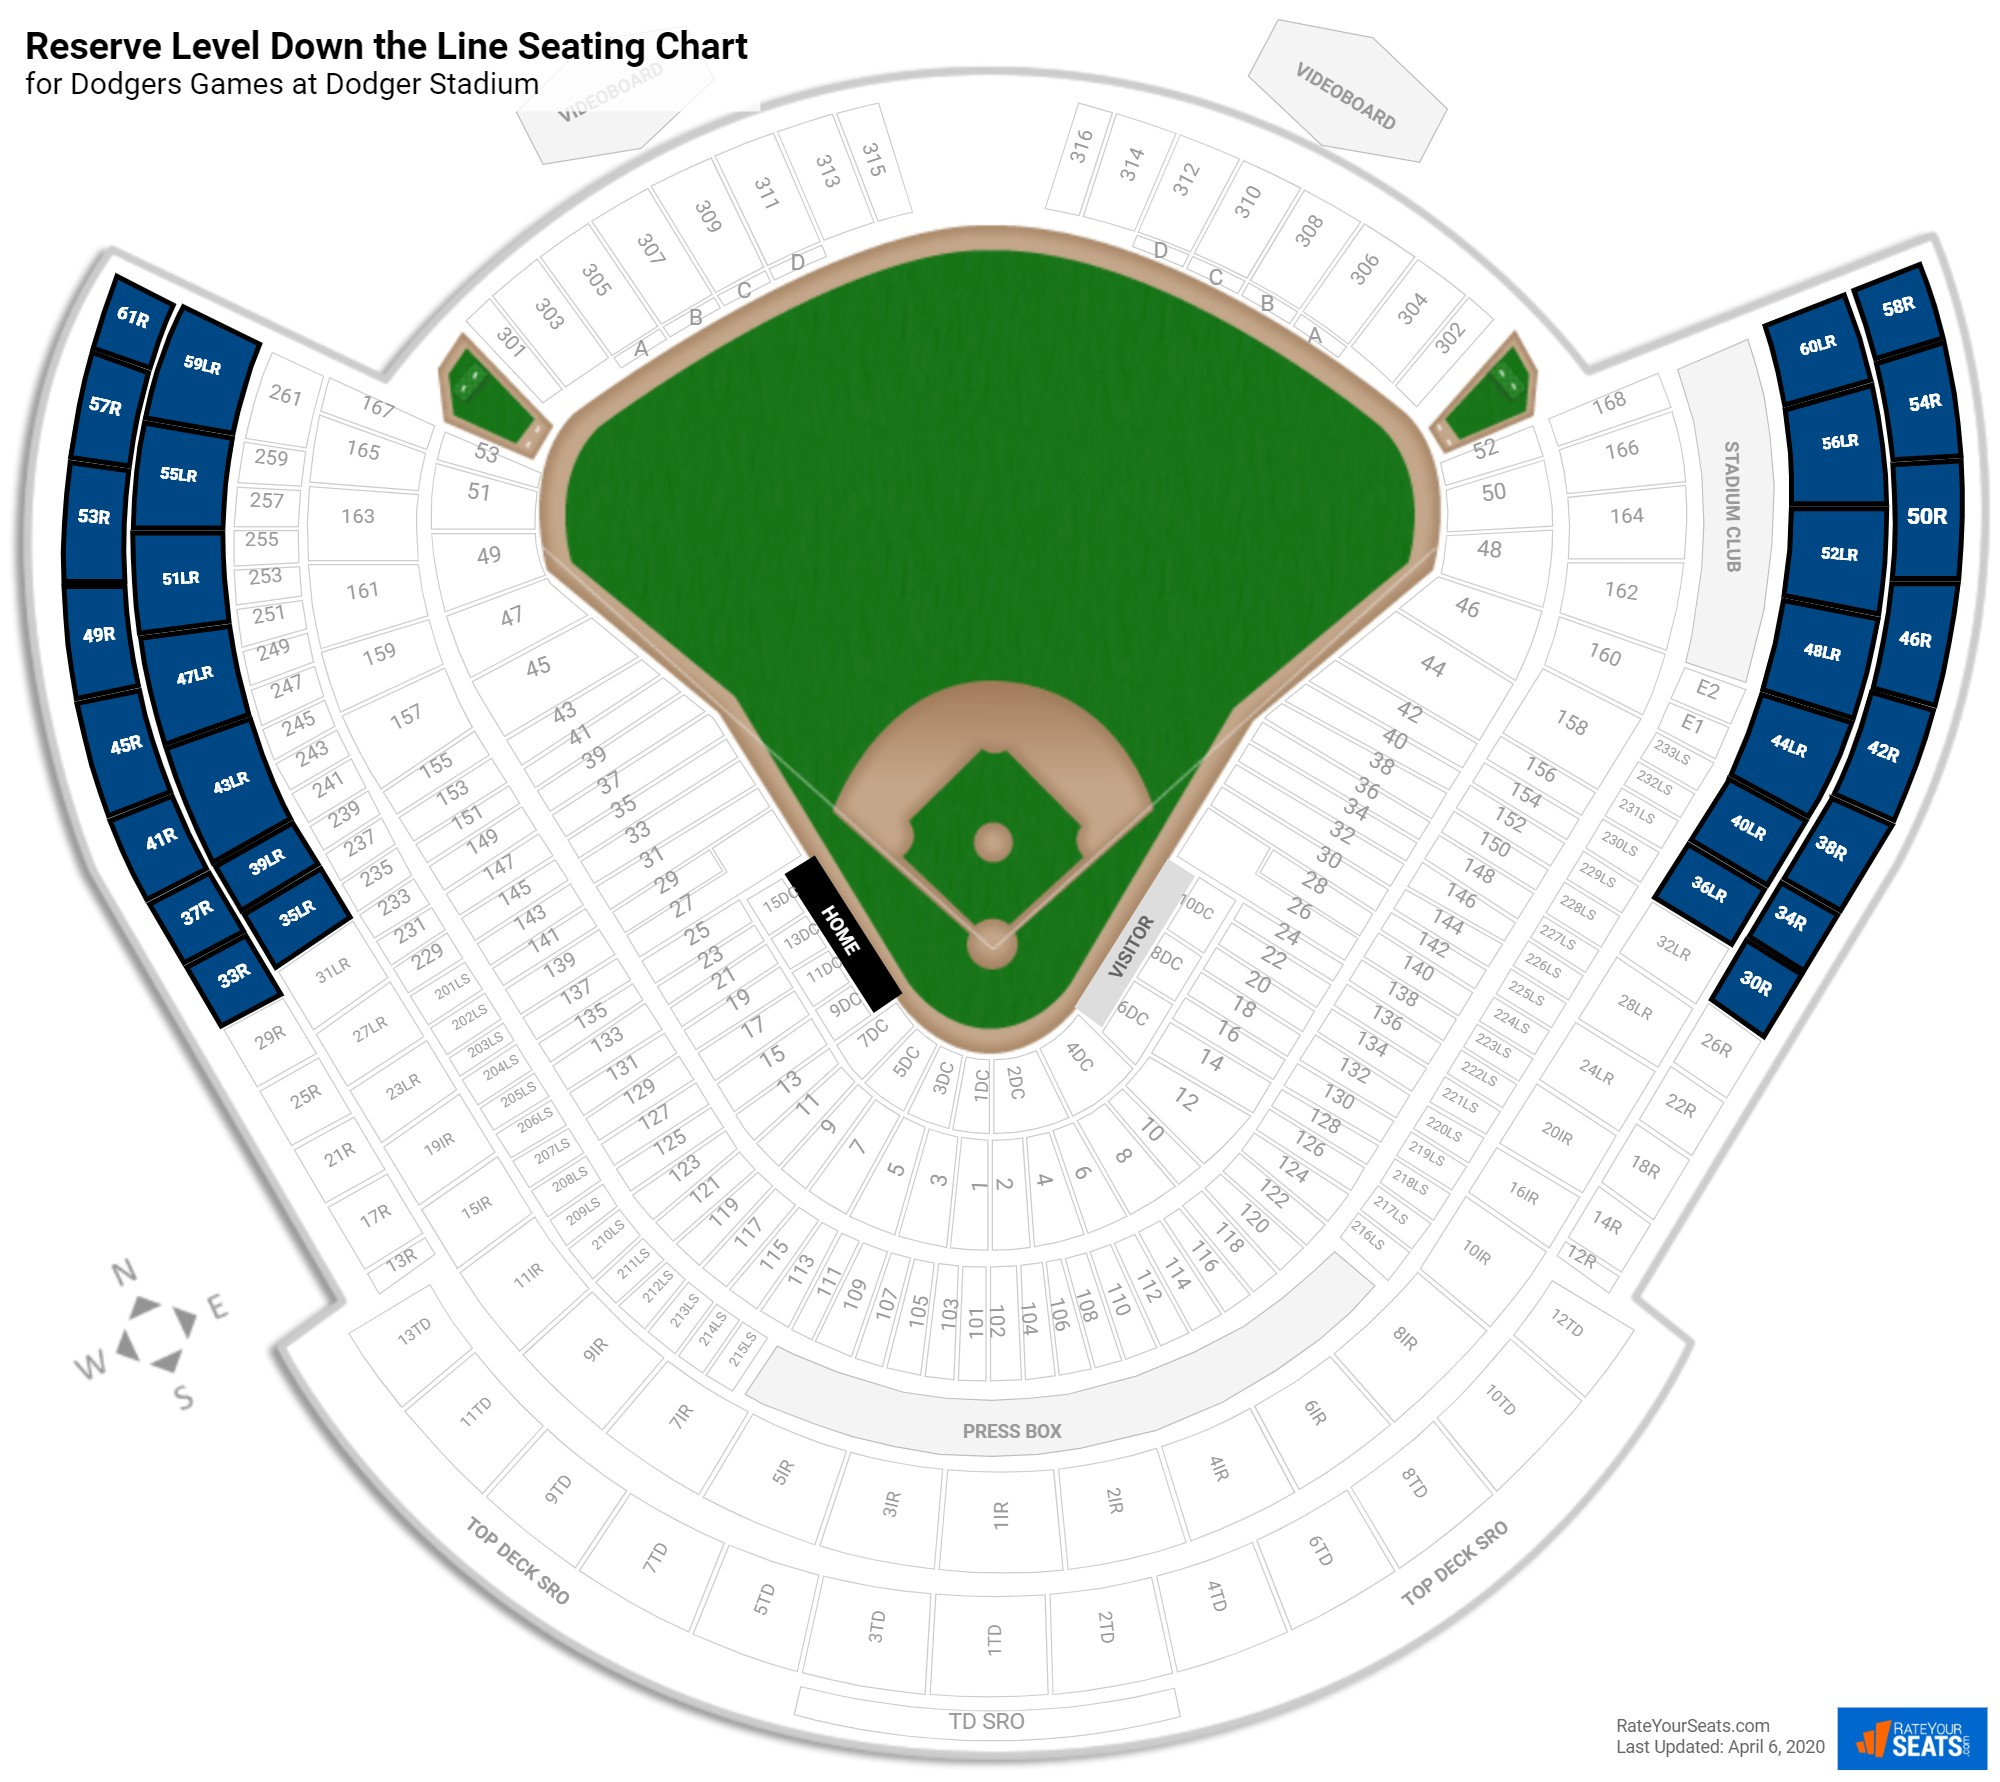 Dodger Stadium Reserve Level Down the Line seating chart